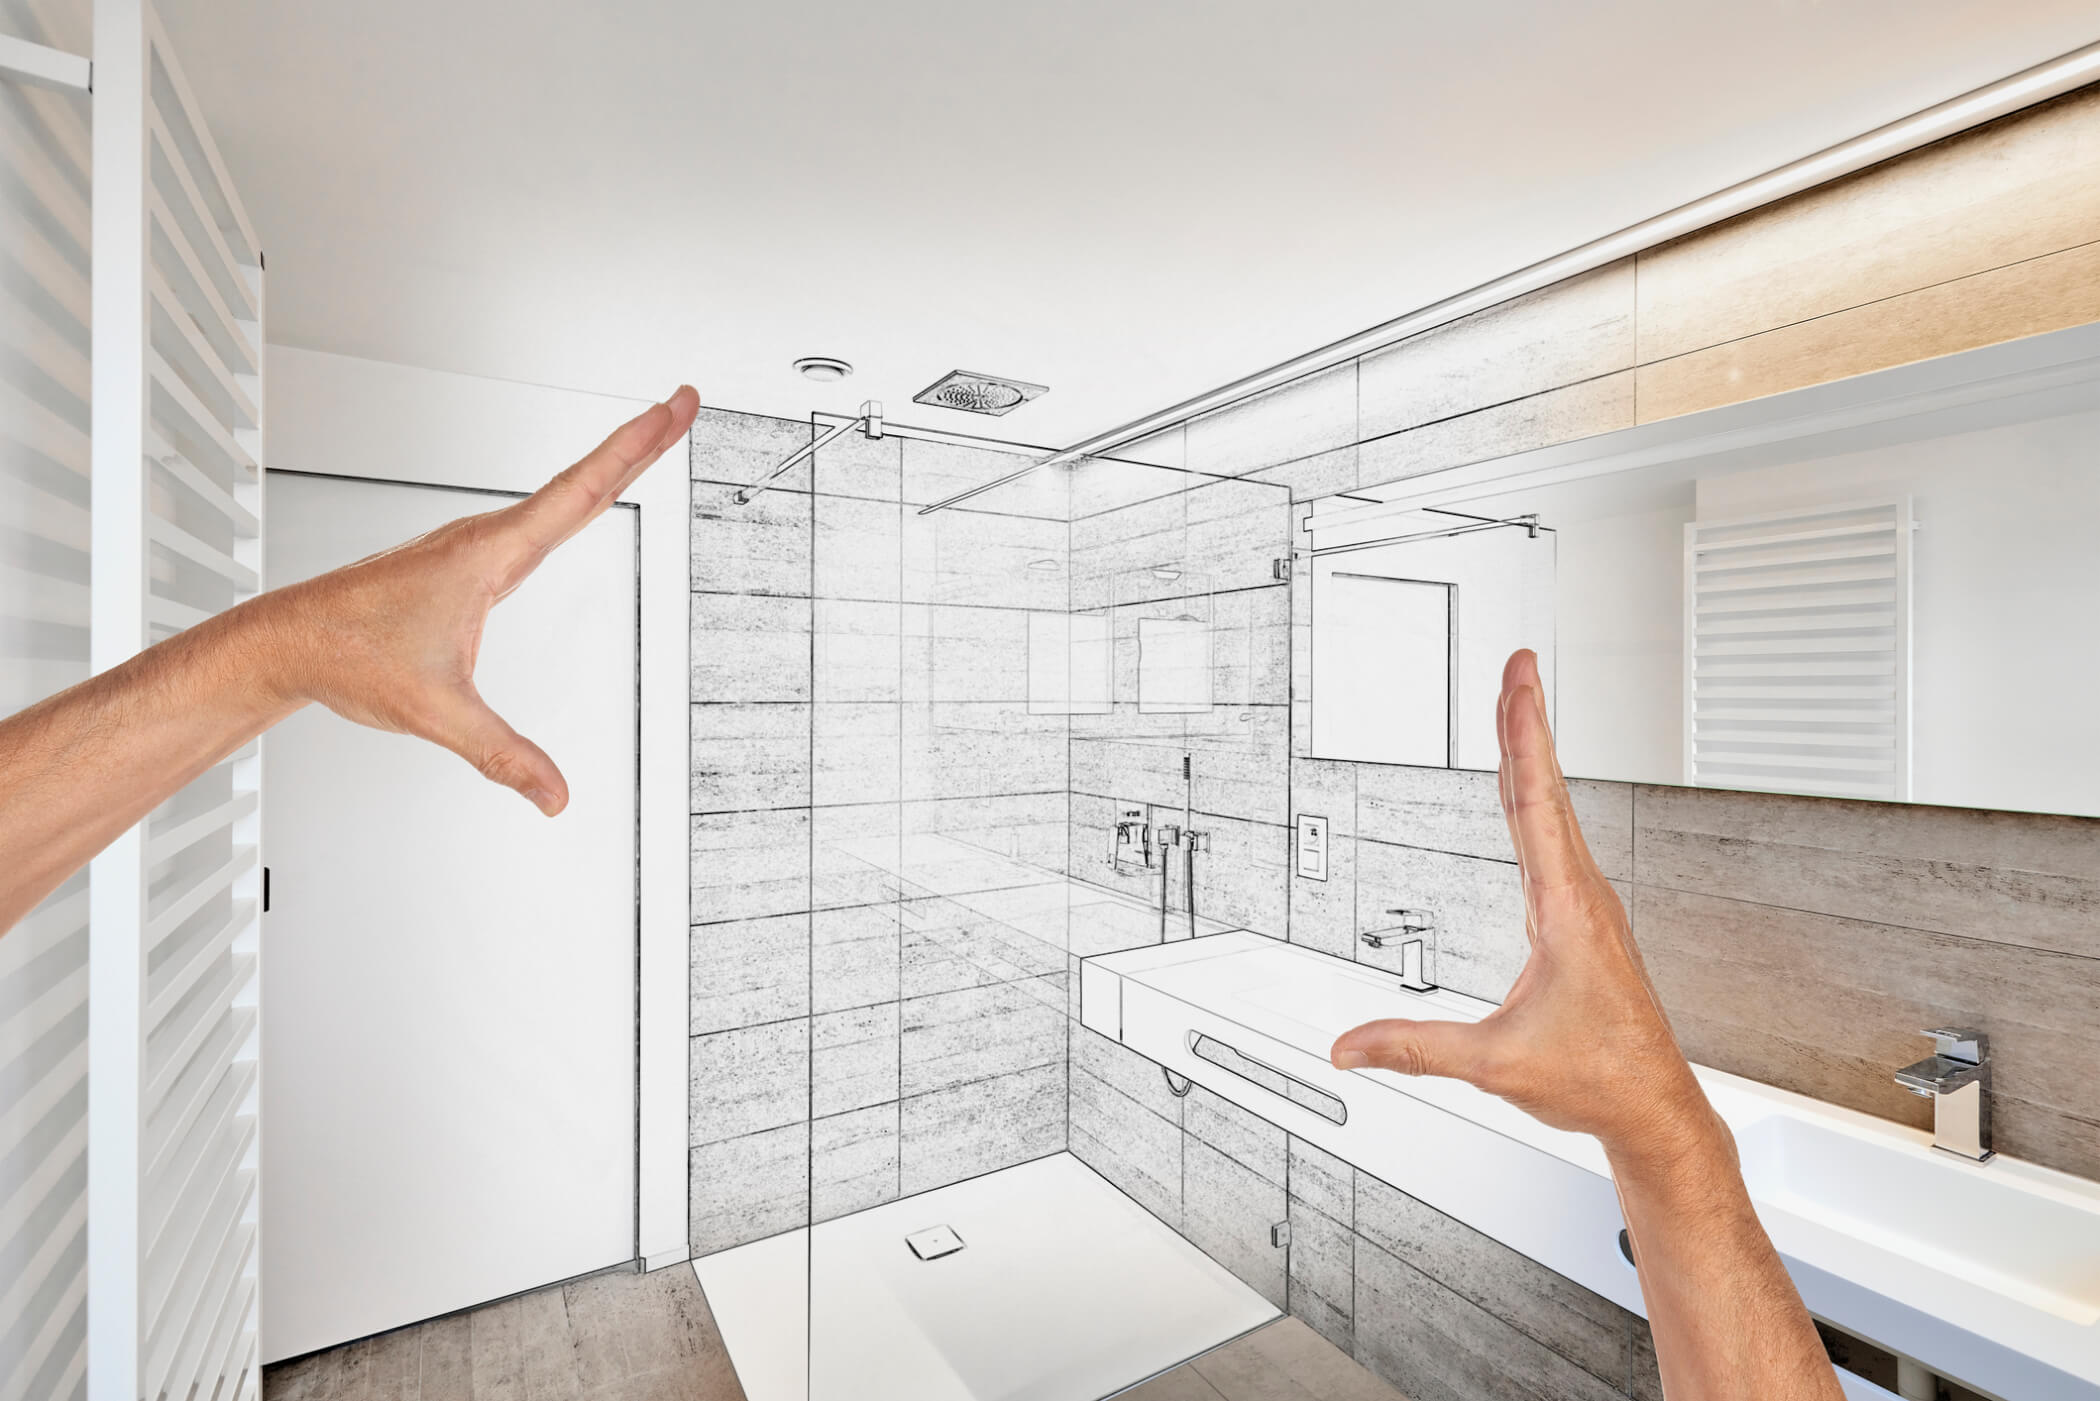 Are you dreaming of remodeling?